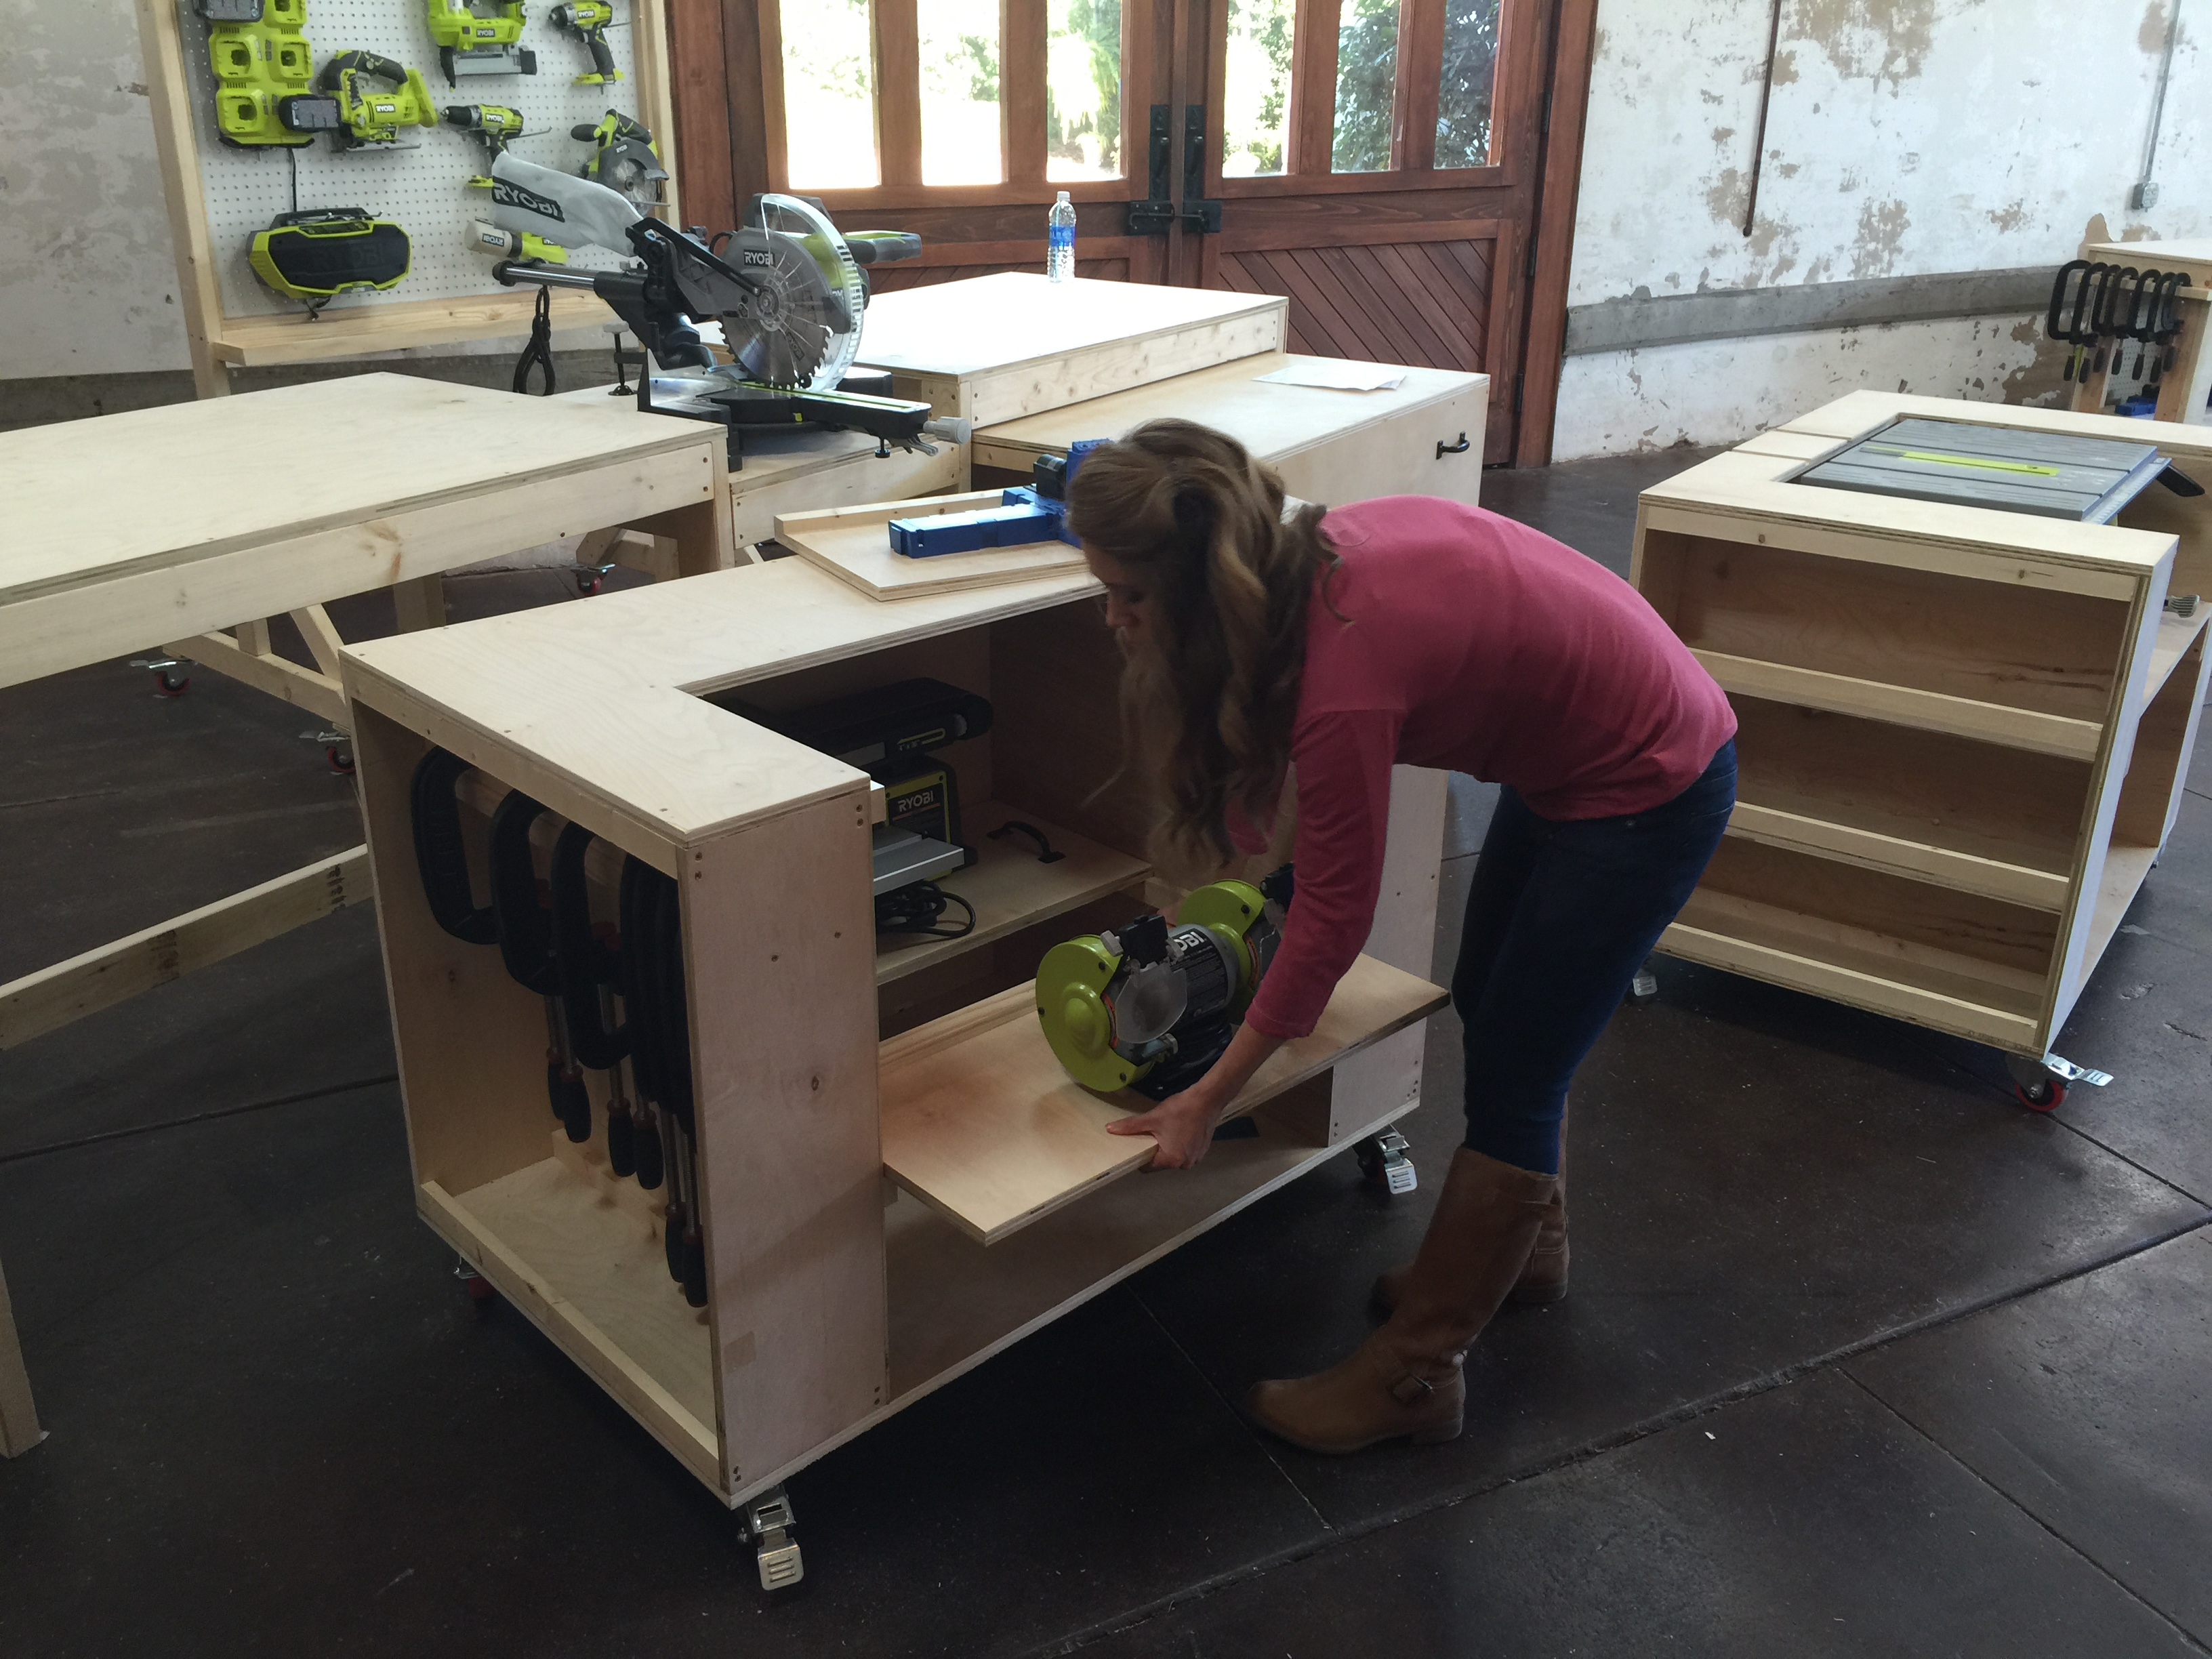 Wondrous Ultimate Roll Away Workbench With Miter Saw Stand Ana White Beatyapartments Chair Design Images Beatyapartmentscom